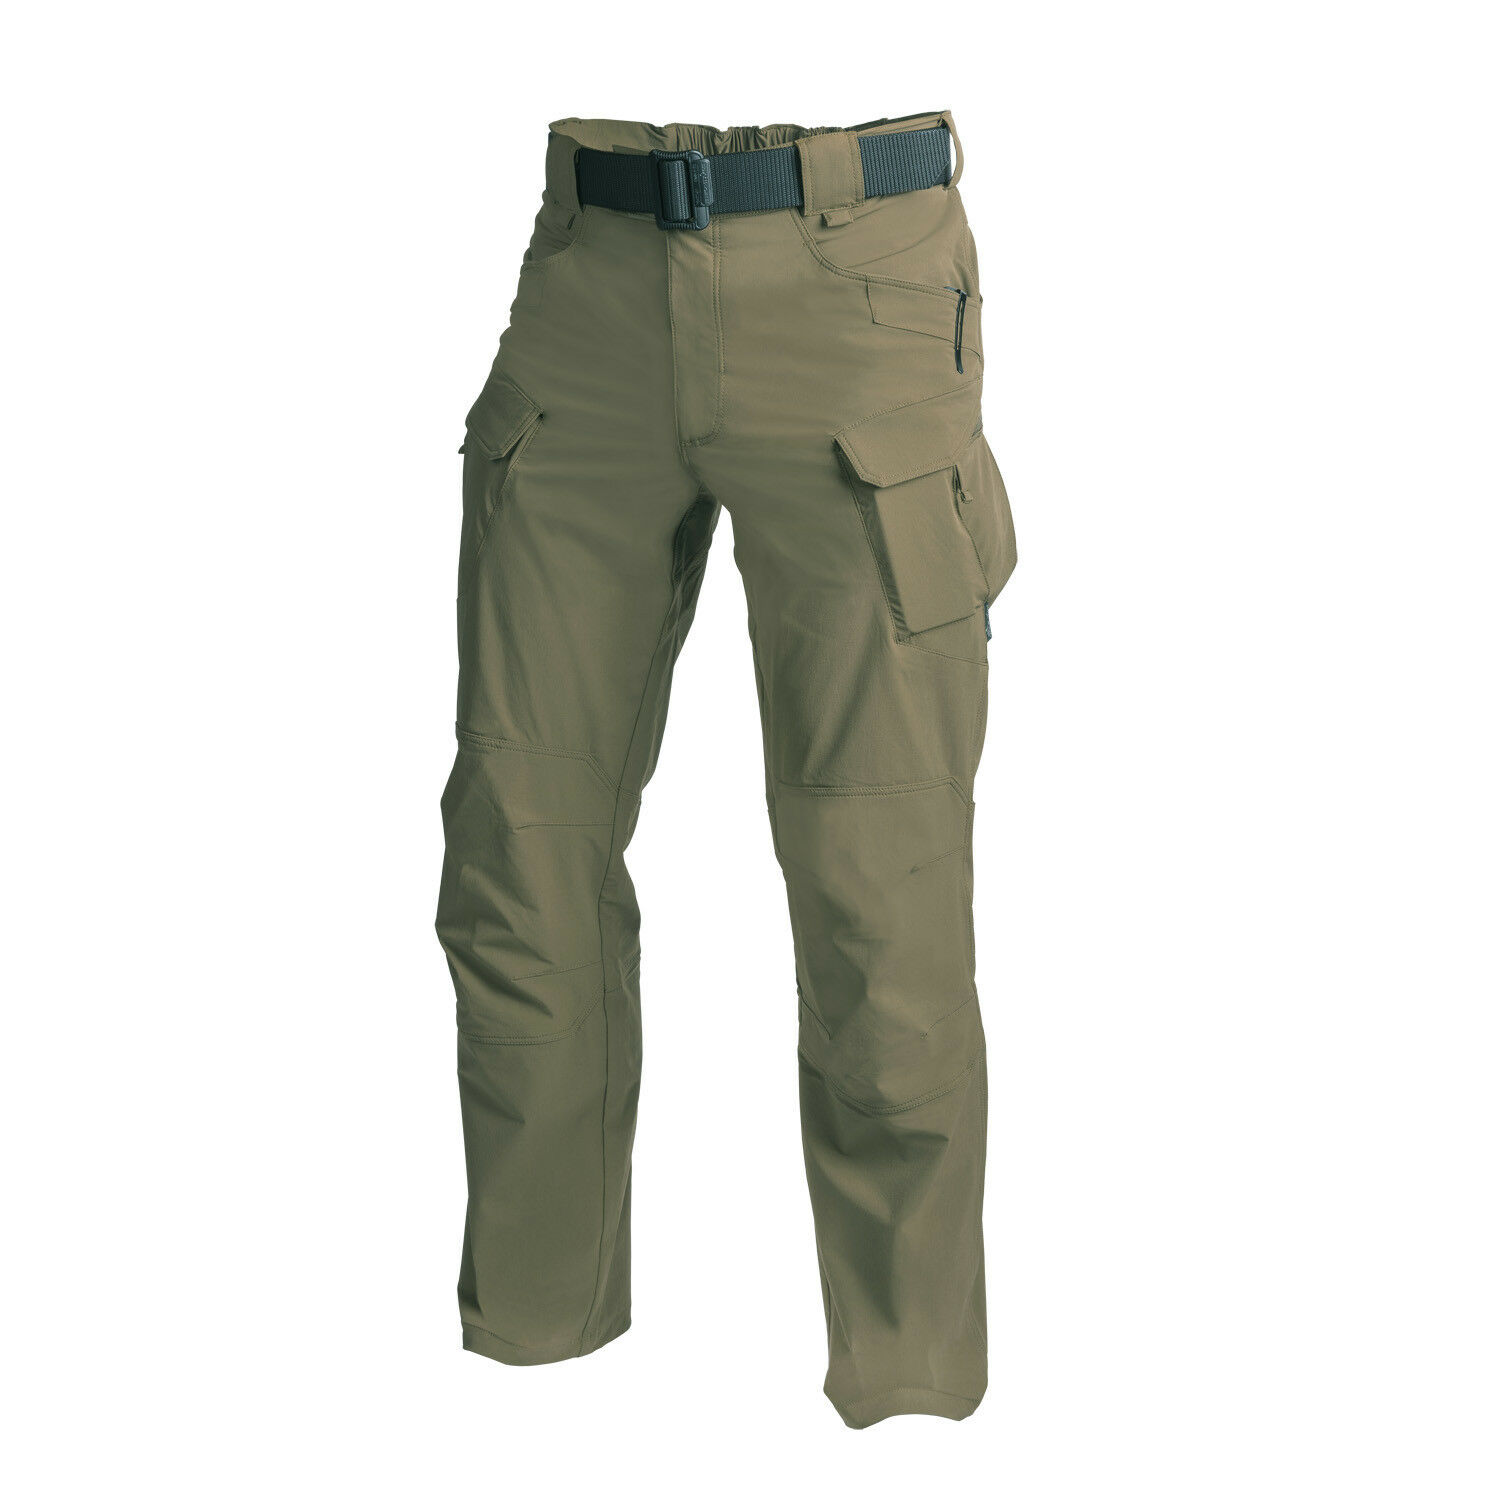 HELIKON TEX OTP Tactical Outdoor Trekking Pants Pantalon Adaptive vert Small long